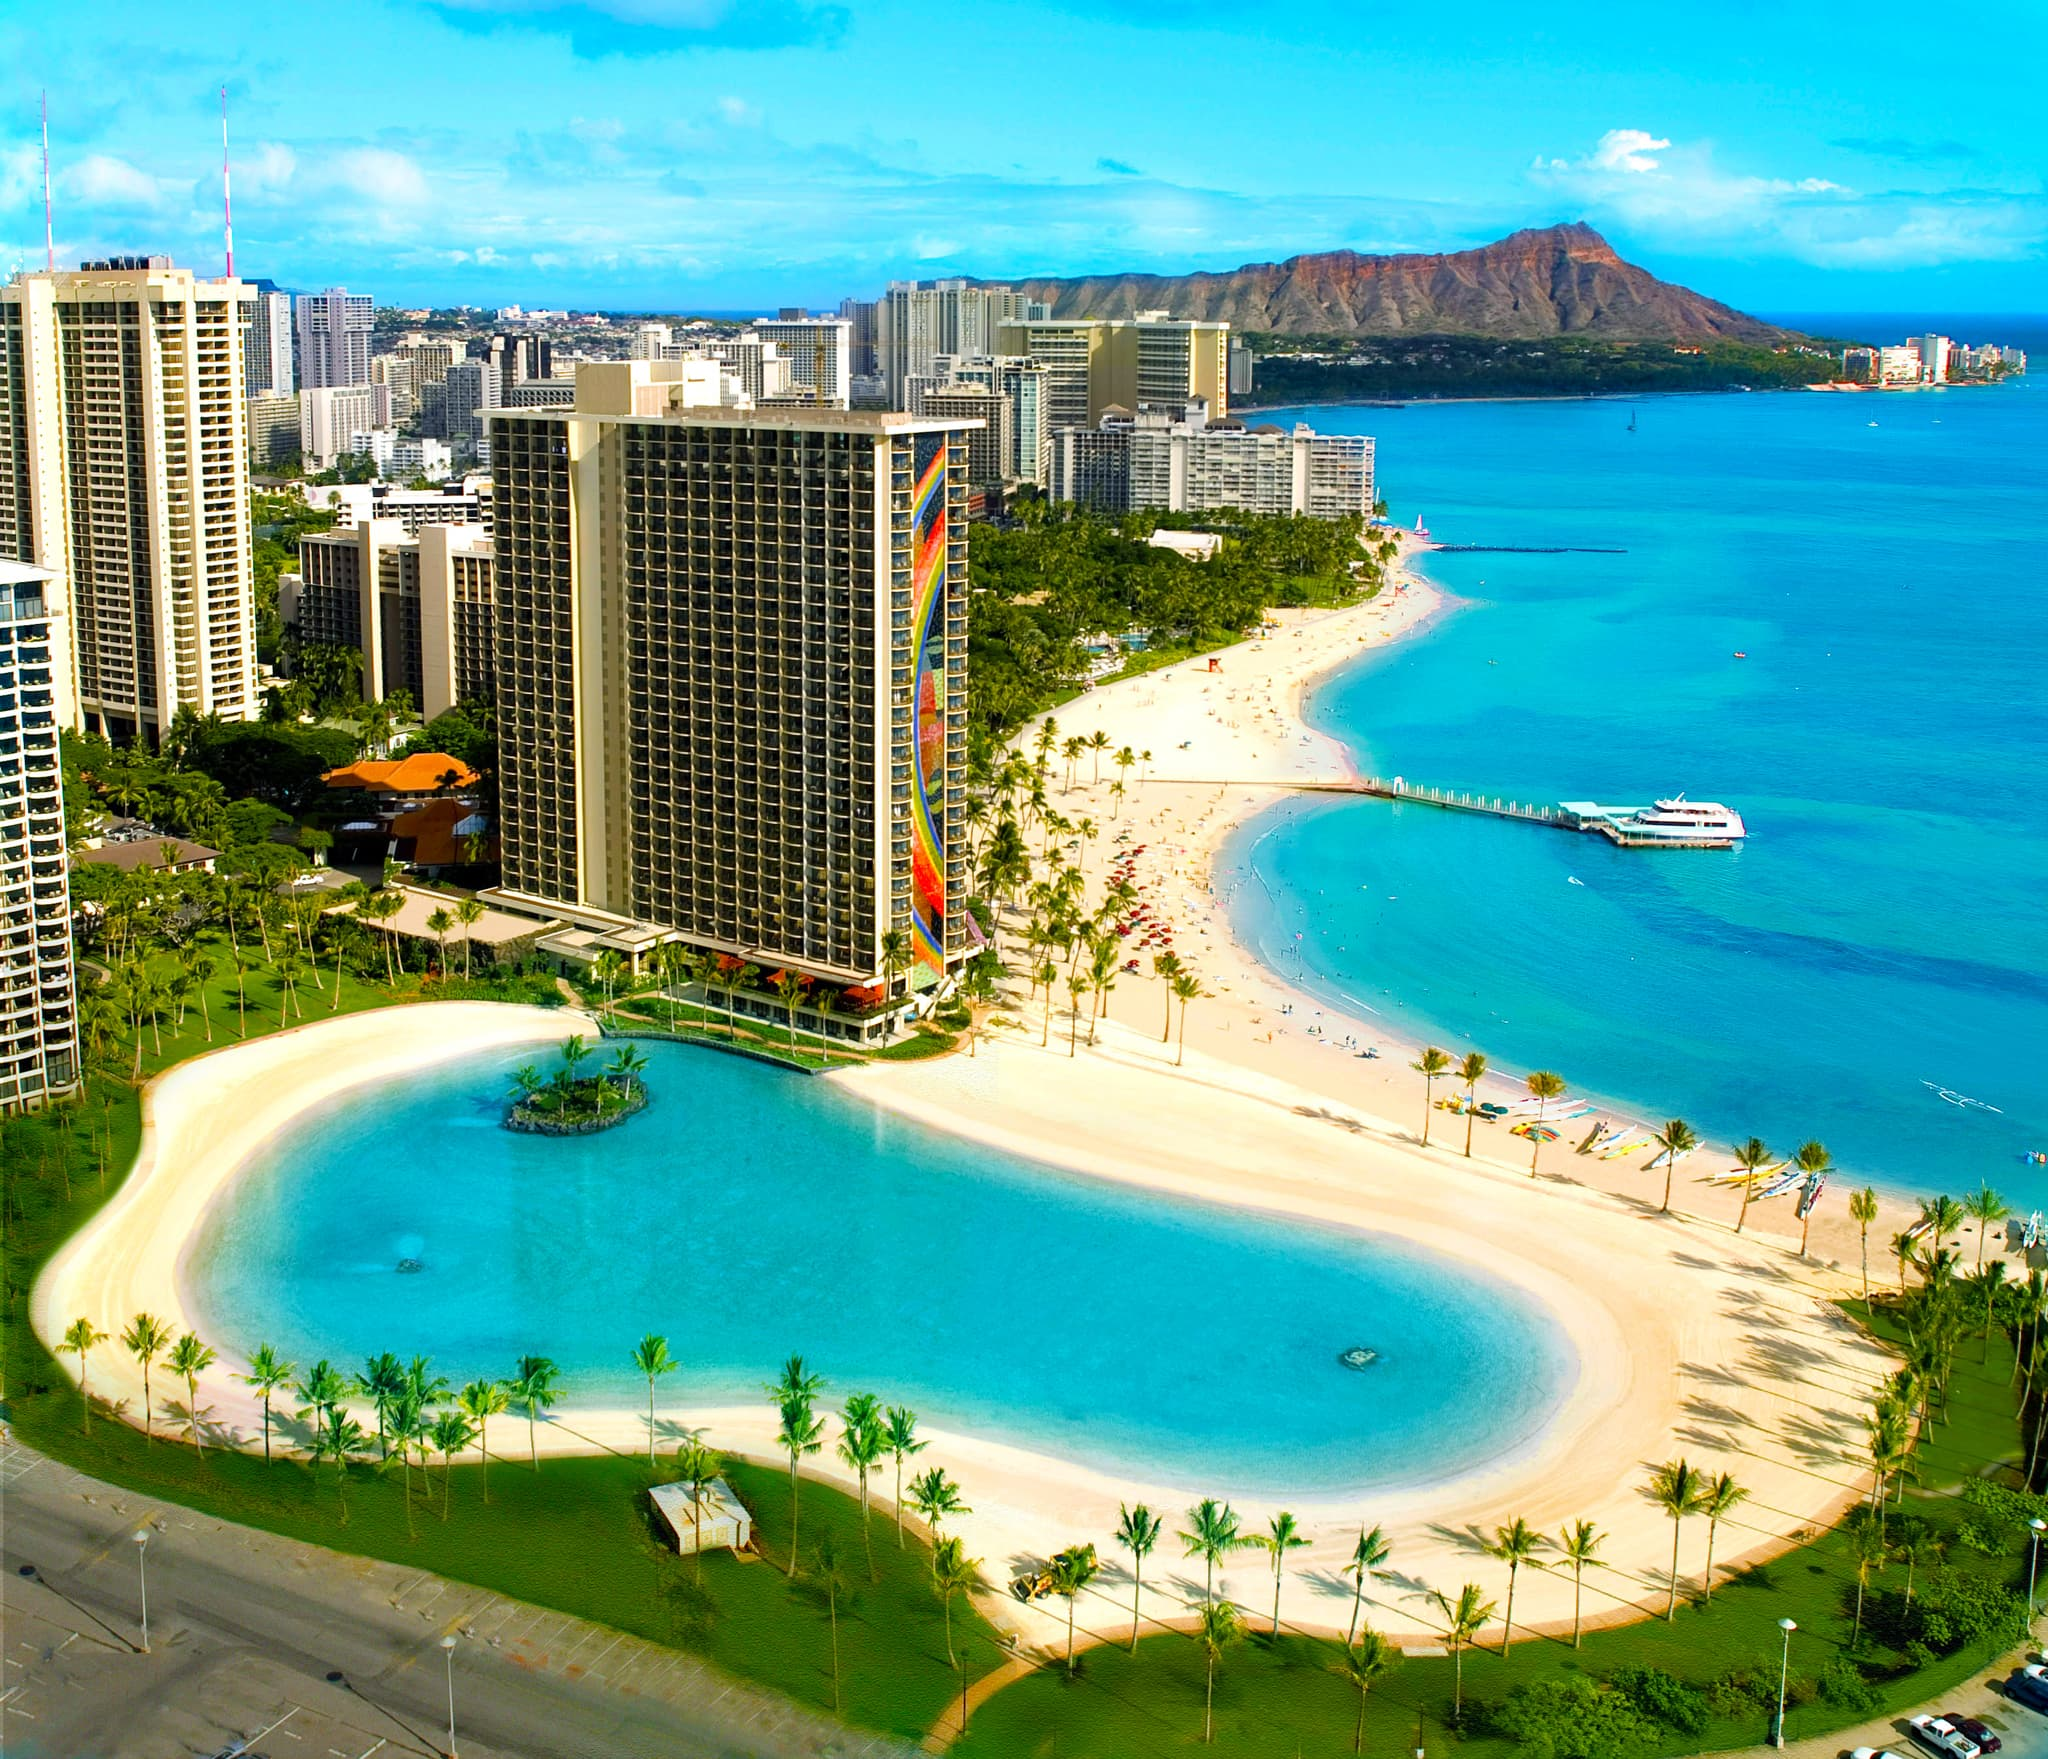 Hilton Hawaiian Village Waikiki Beach Photo Gallery 2048x1759